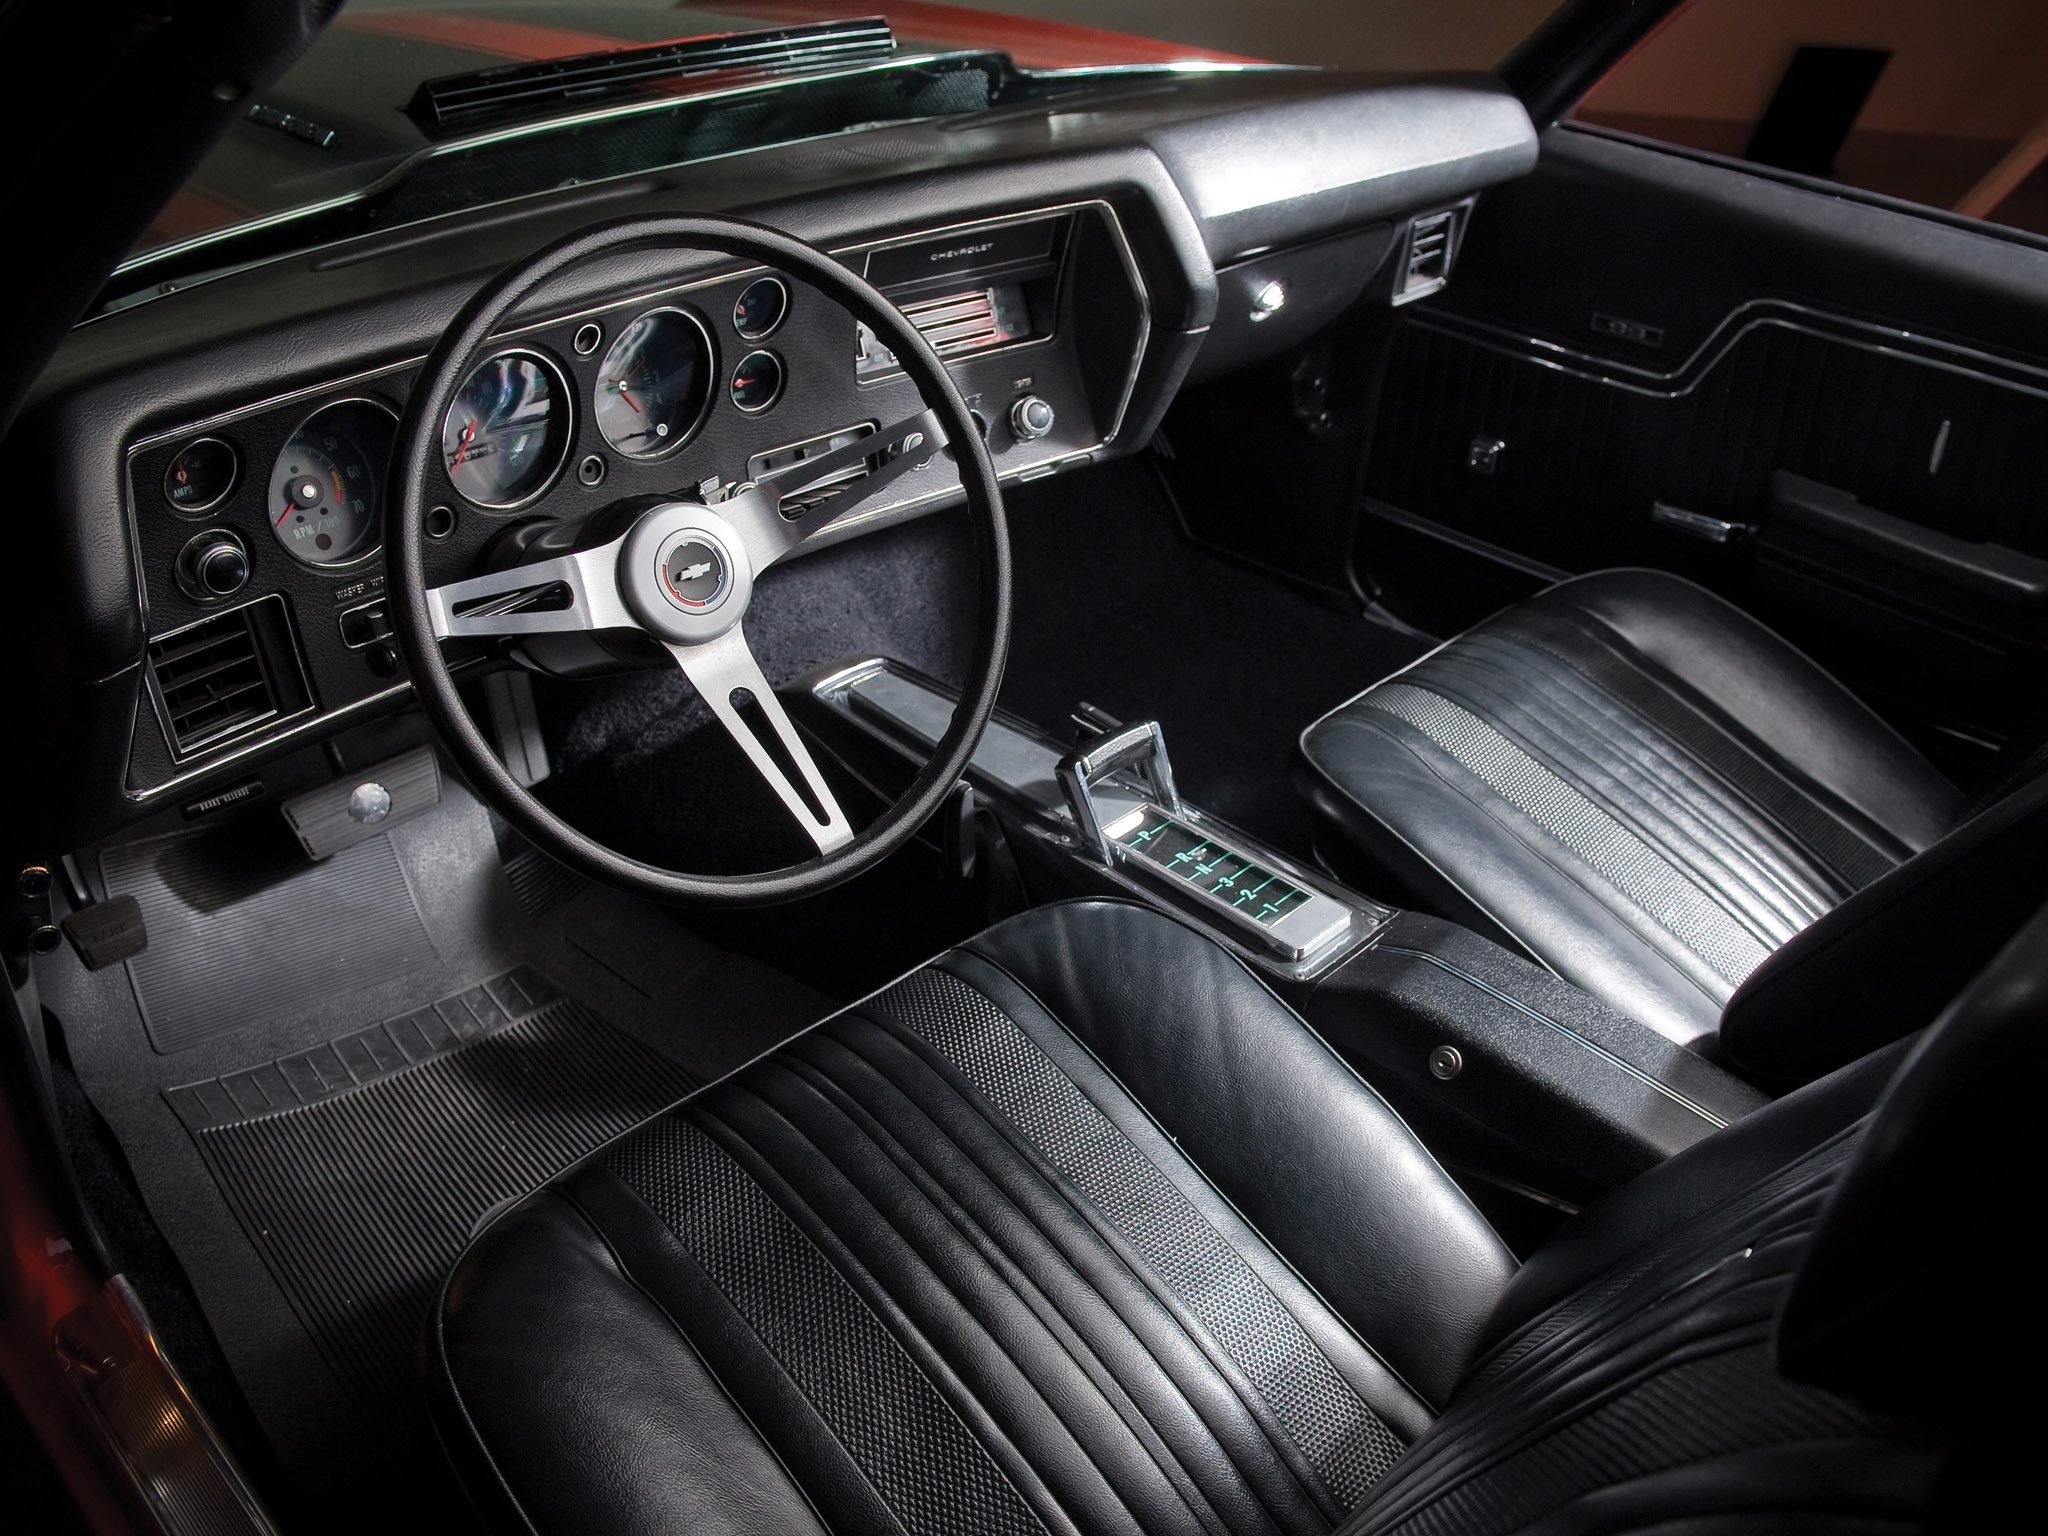 1970 chevrolet chevelle s s 454 pro ls6 convertible classic muscle interior wallpaper. Black Bedroom Furniture Sets. Home Design Ideas